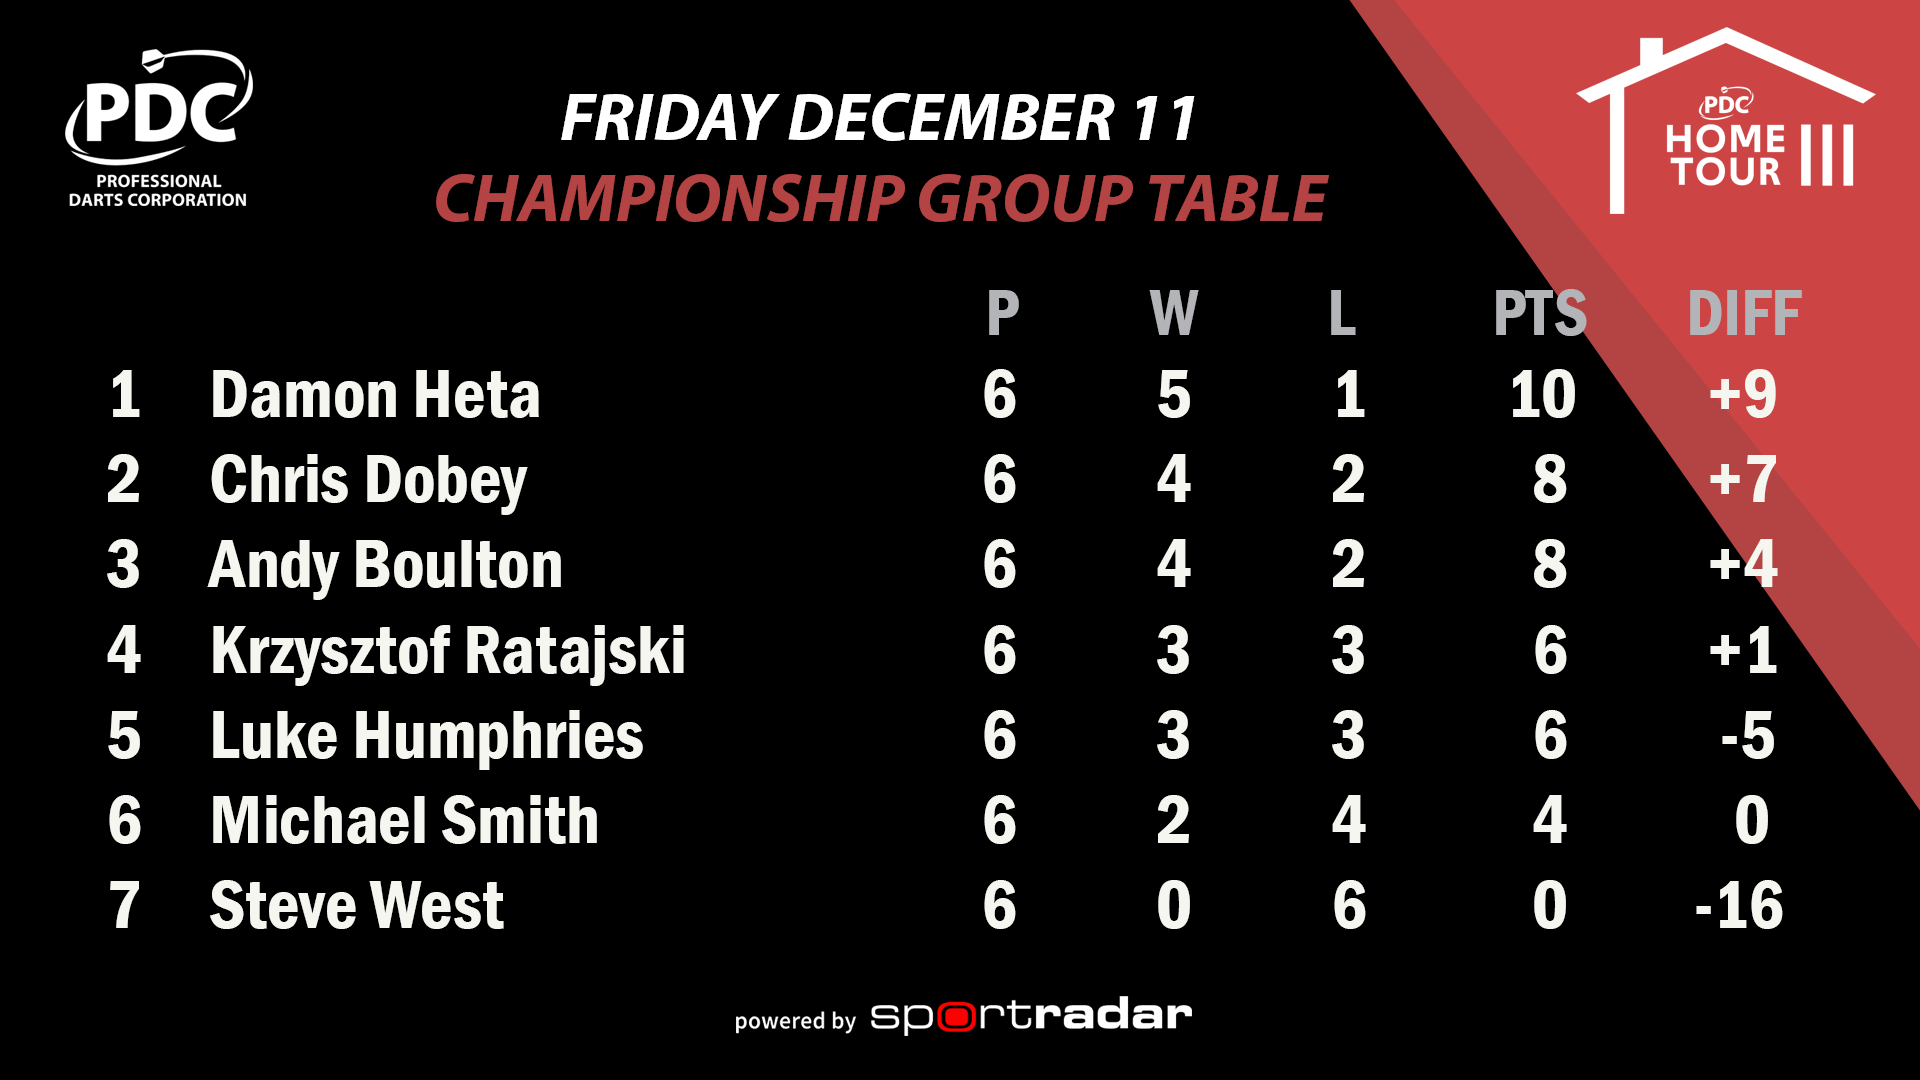 PDC Home Tour III Championship Group Table